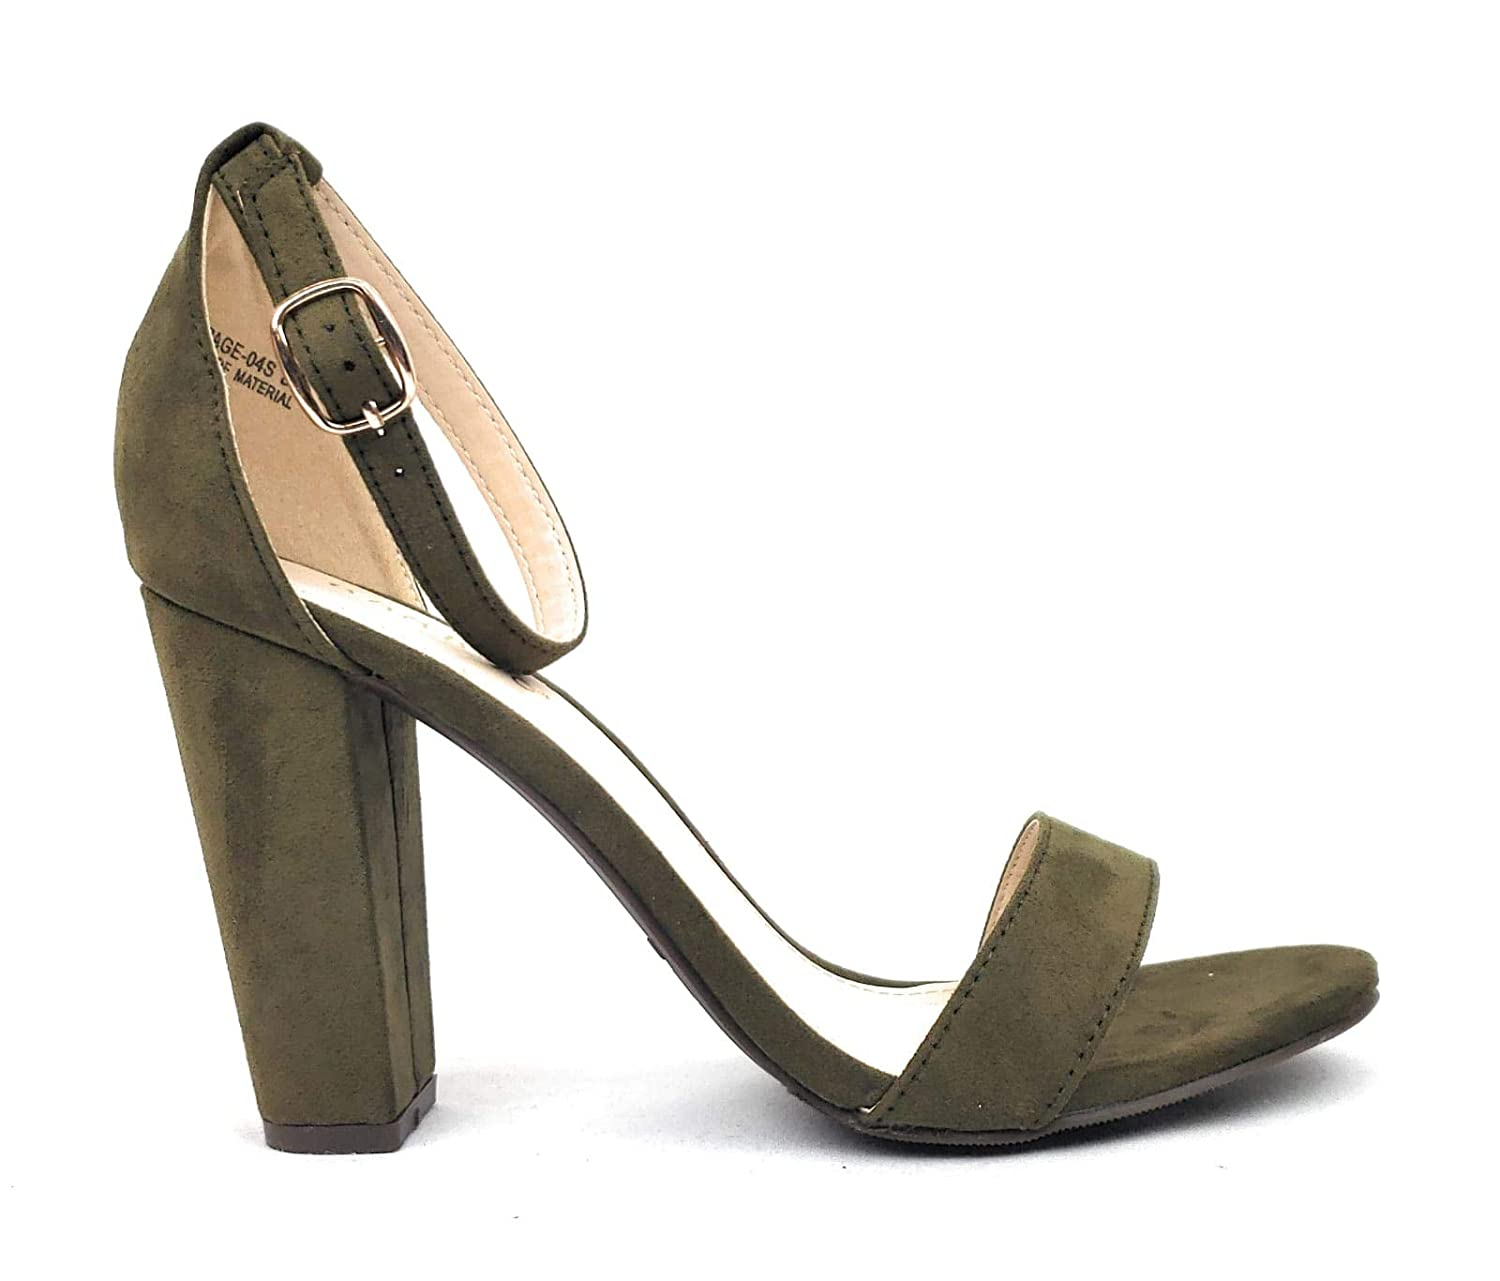 962cab4834 Amazon.com | BAMBOO Women's Single Band Chunky Heel Sandal with Ankle Strap  | Shoes